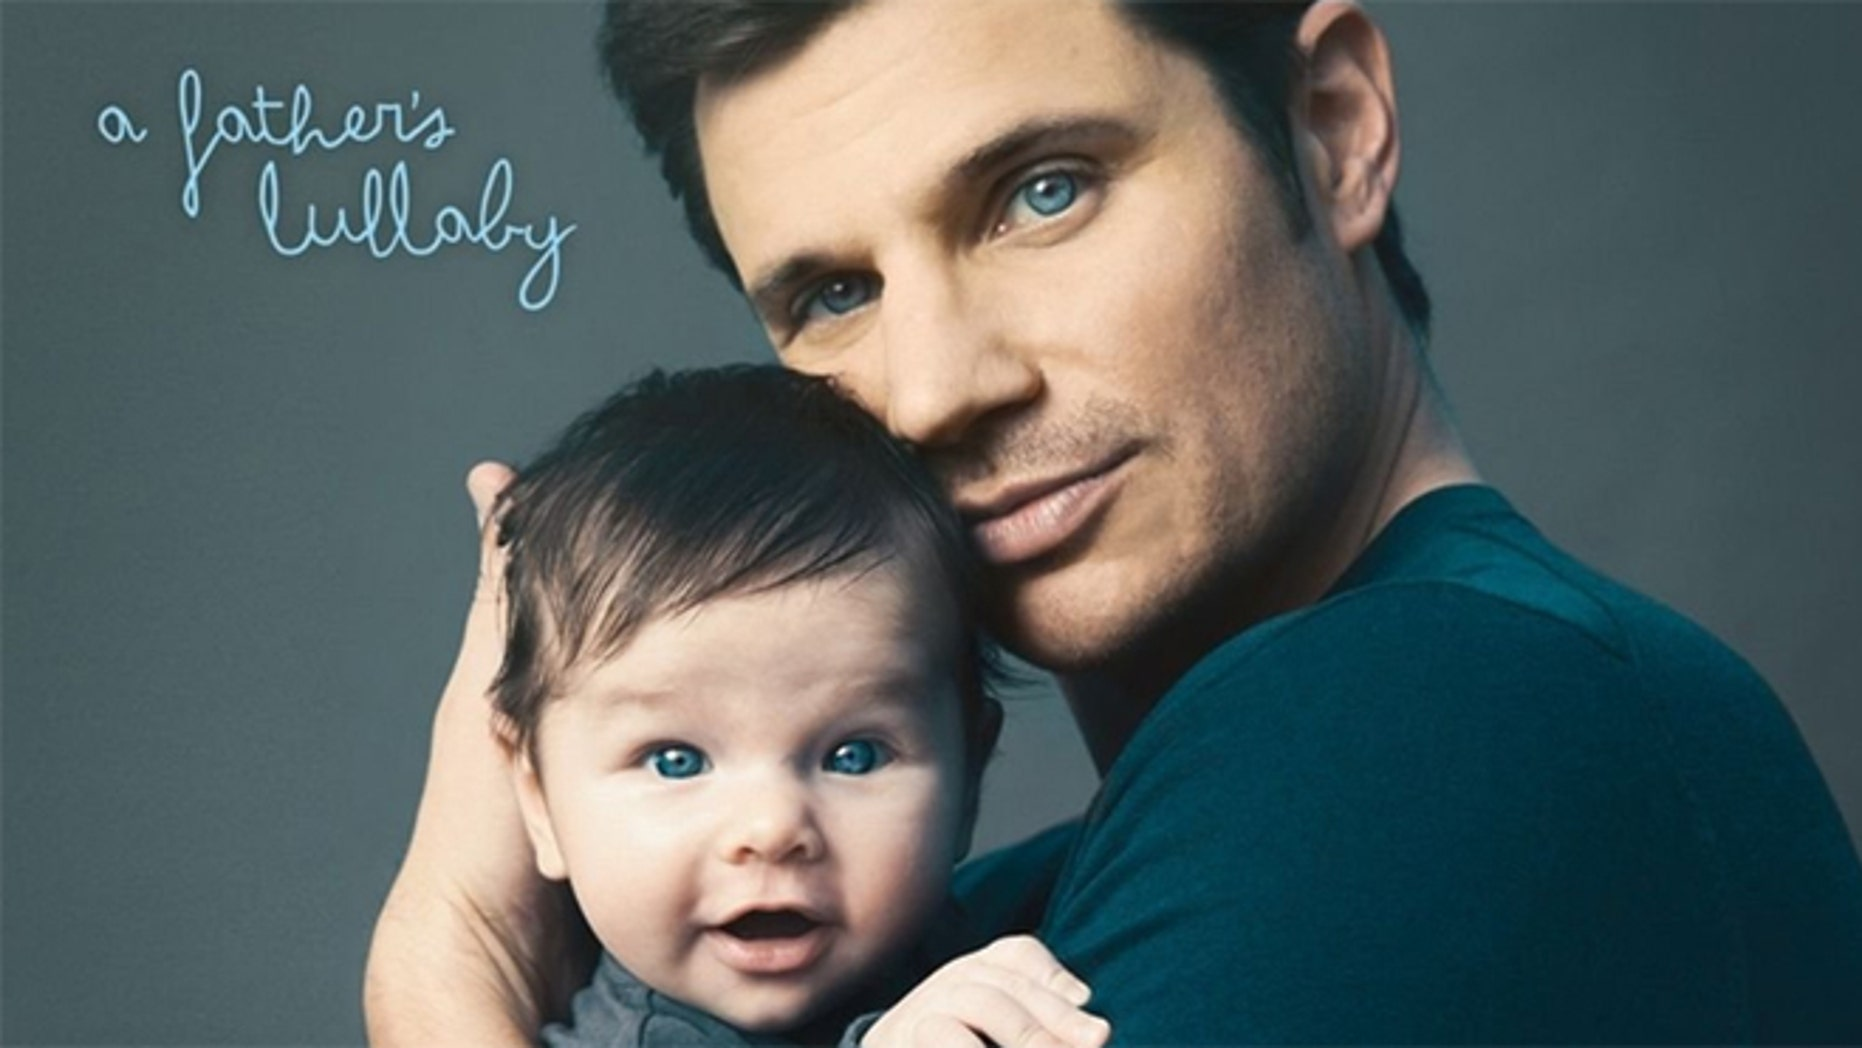 Nick Lachey poses with his son, Camden, for his album cover.